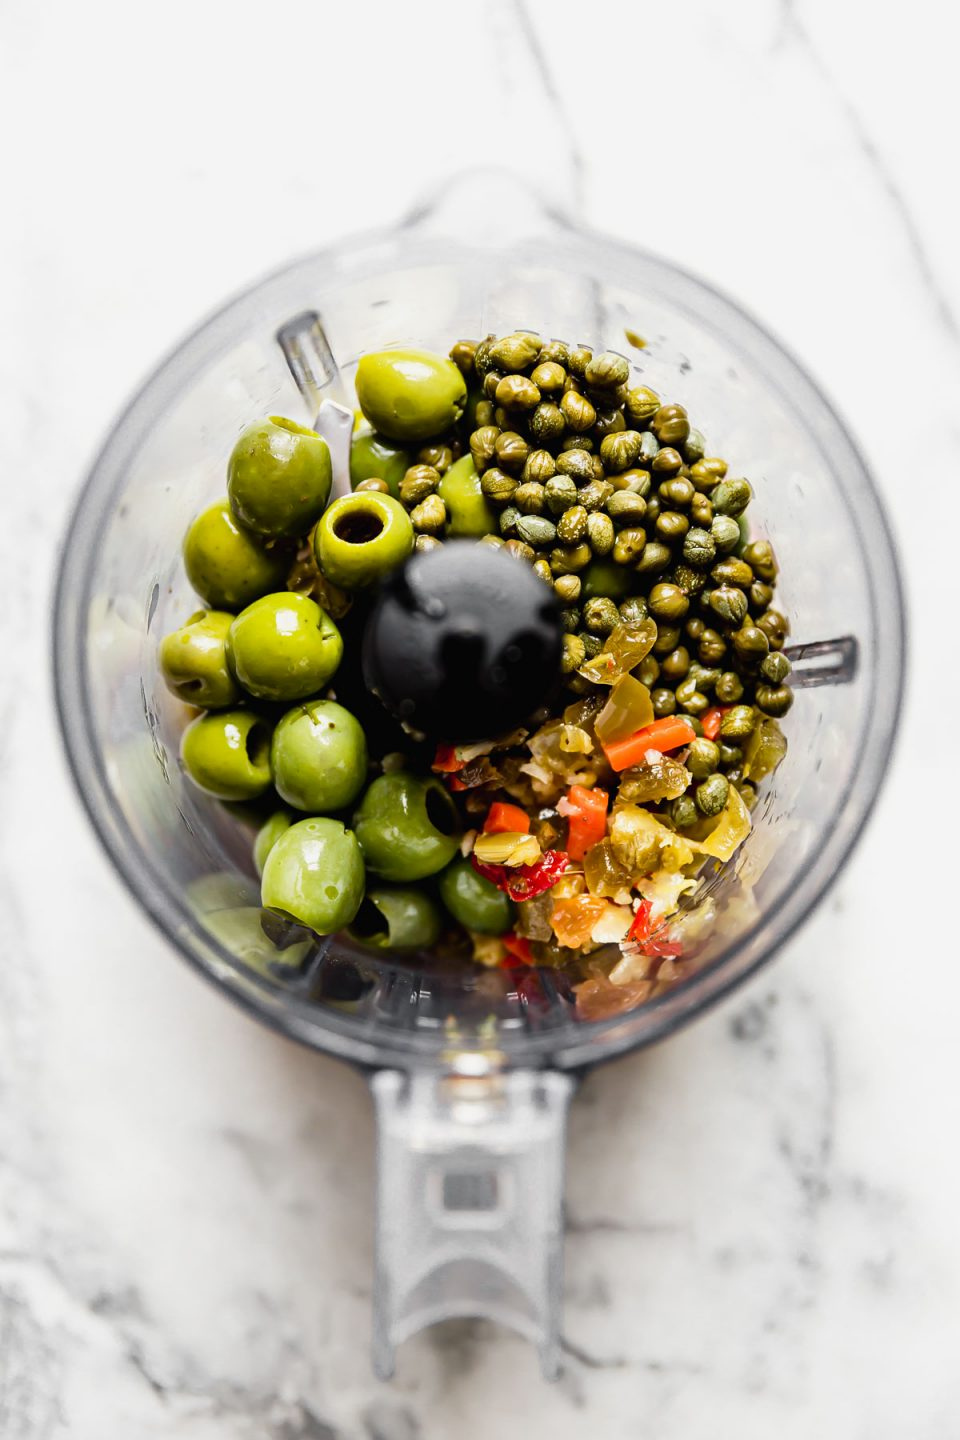 Castelvetrano-giardiniera relish ingredients (castelvetrano olives, giardiniera, & capers) in the bowl of a small food processor, placed atop a white marble surface.